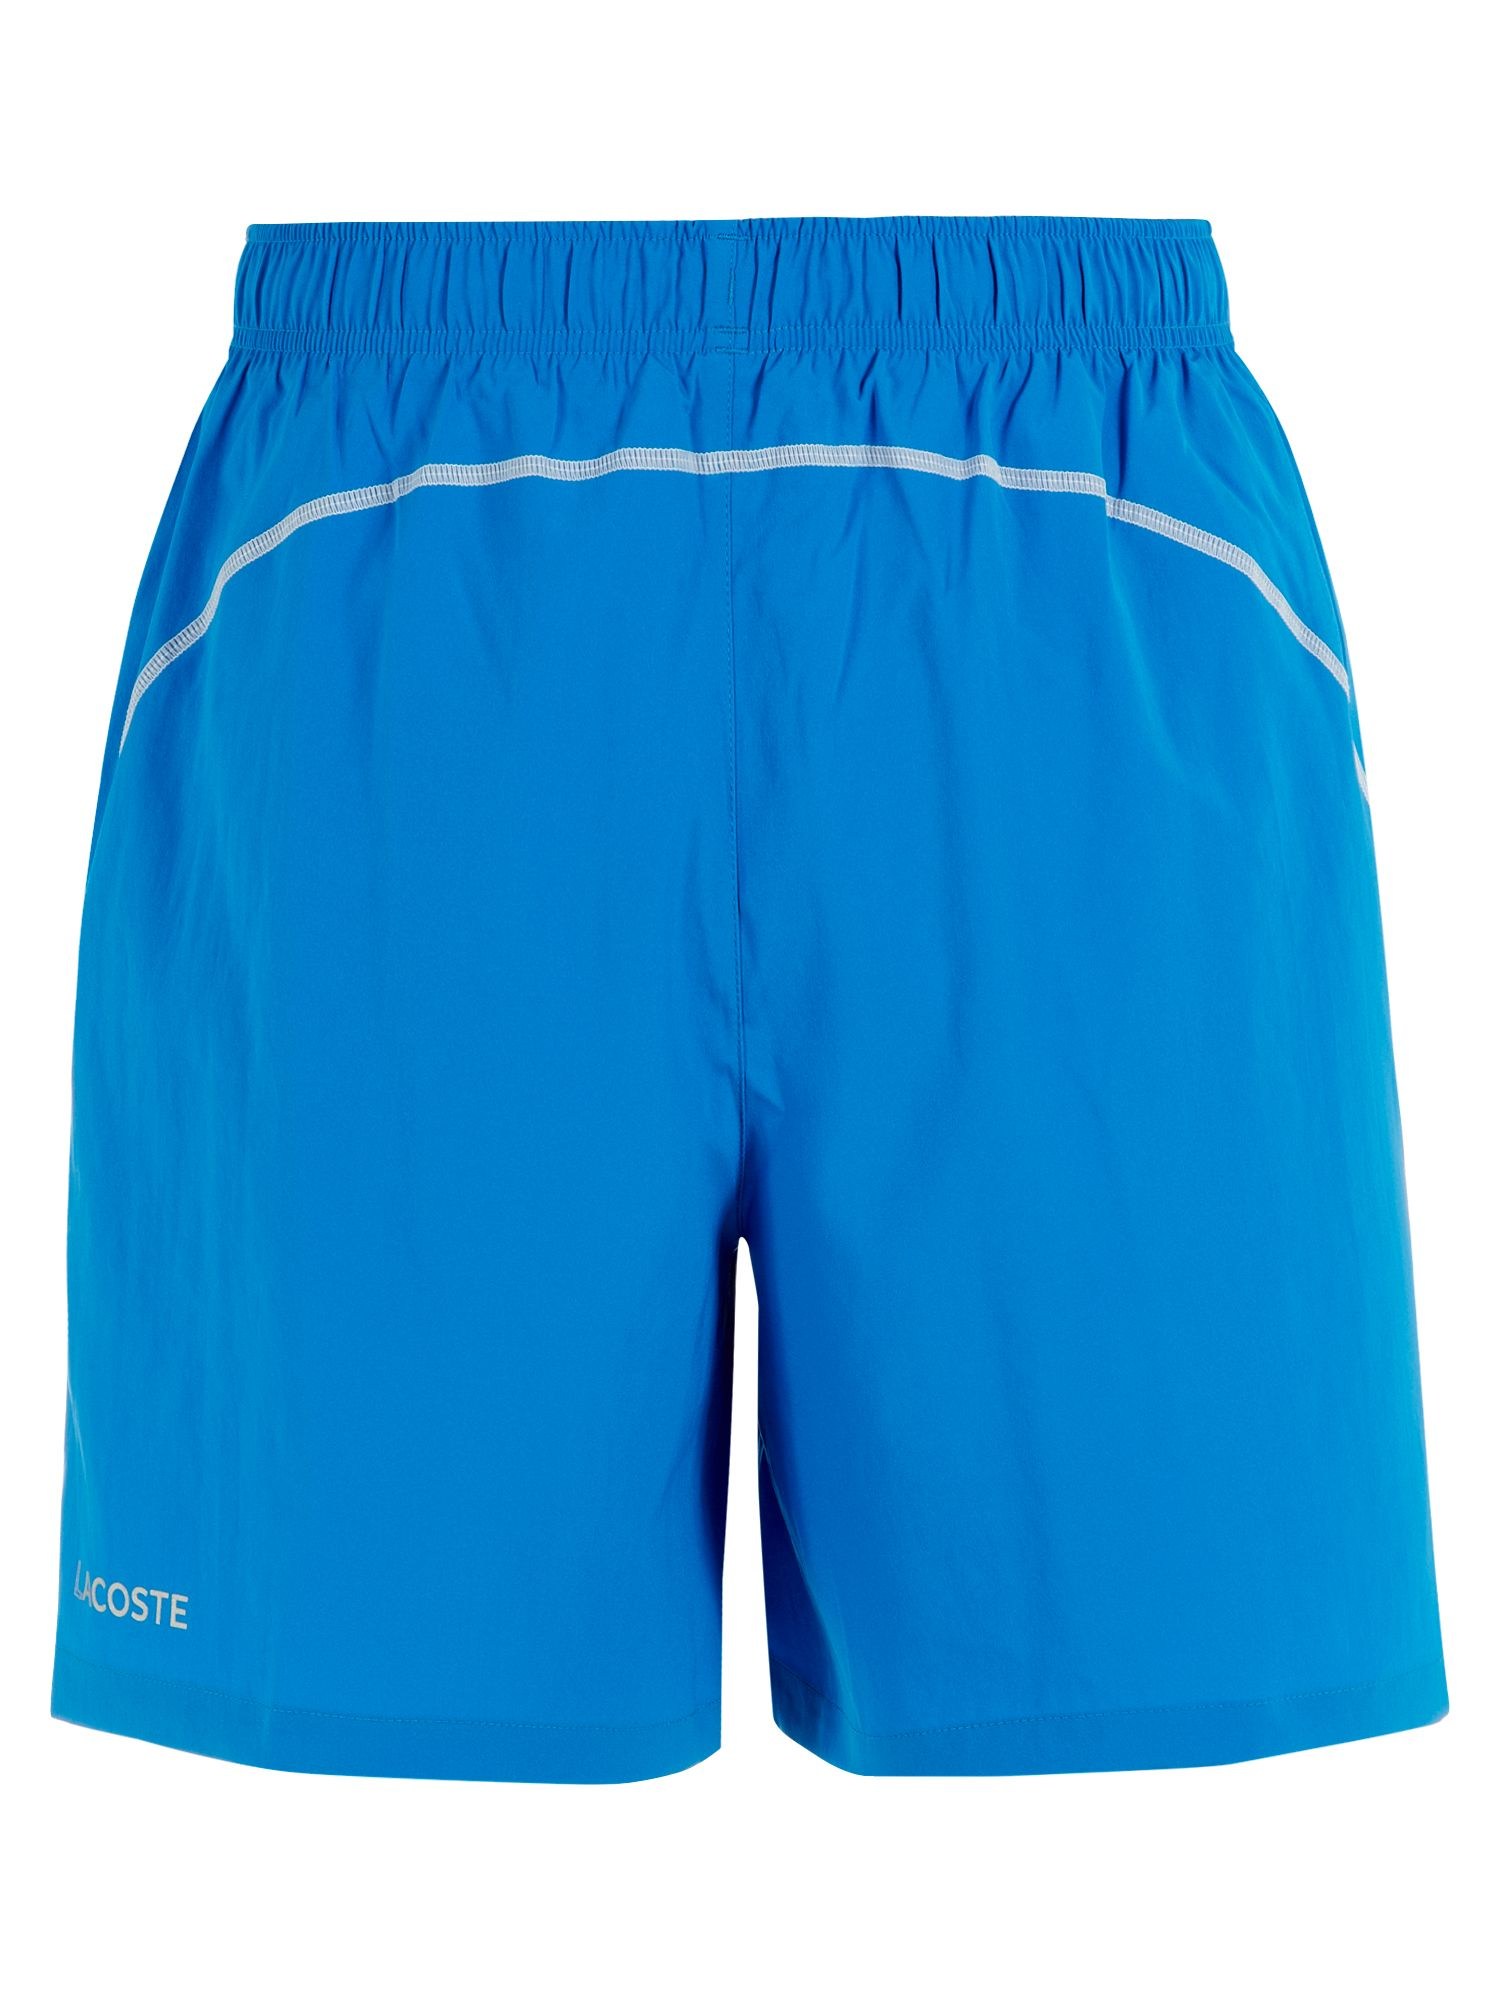 Swim board shorts